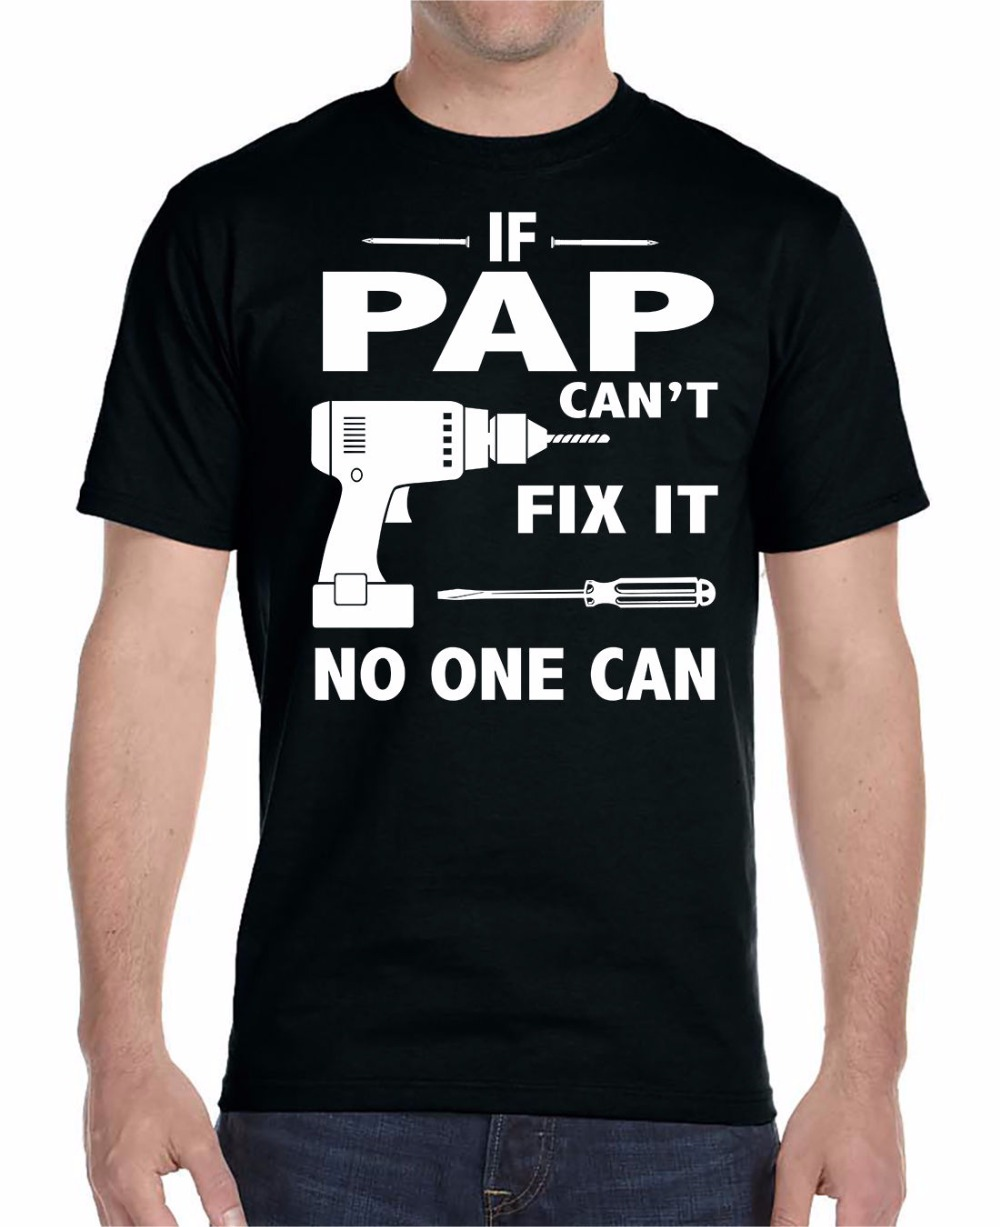 Graphic Tees Short Summer O-Neck If Pap CanT Fix It No One Can Funny Tee Shirt For Men